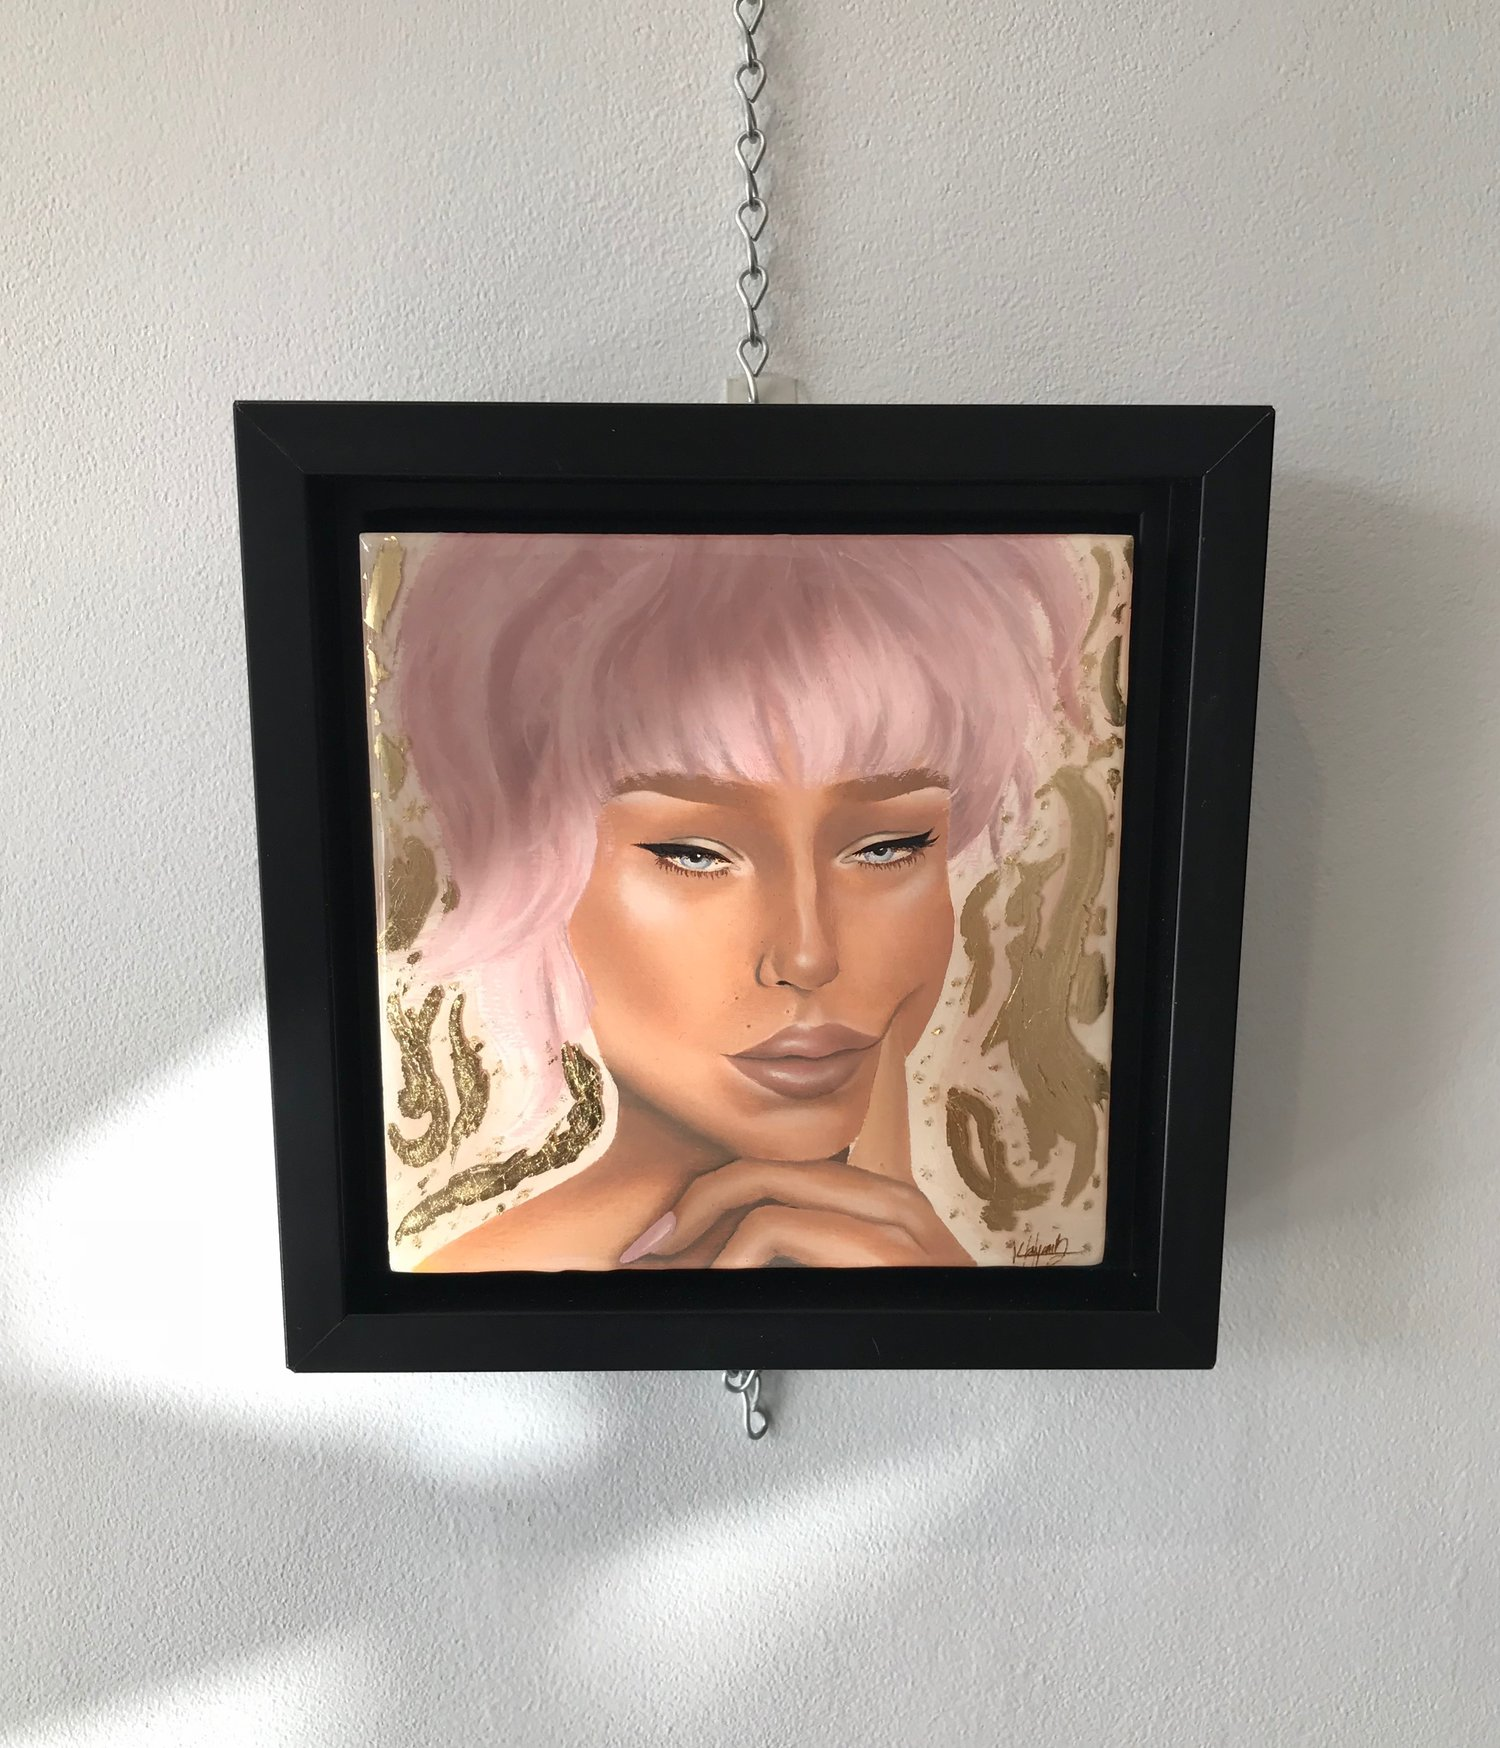 shari - Oils, mixed media and resin on panelFramed6 x 6 inches2018$160For inquiries, please send an e-mail to kayanhbennett@gmail.com